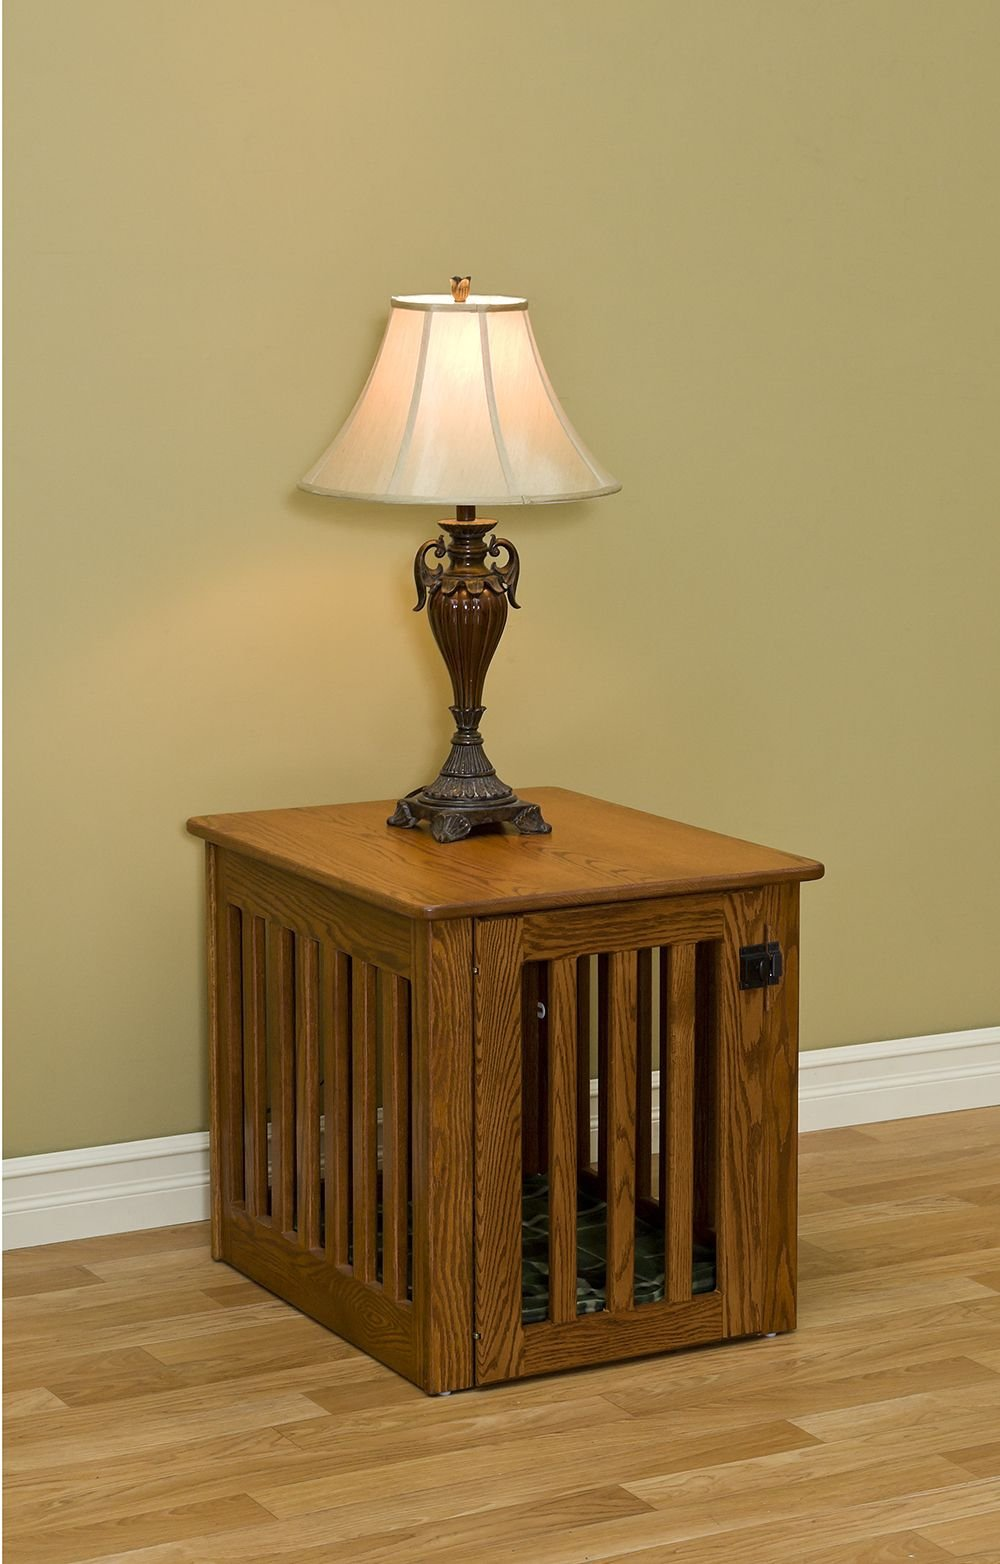 Wooden  Dog Crate - Decorative Dog Crate End Table Made of Oak Wood Furniture Medium Sized 29 x 23 x 24 inches by Pinnacle